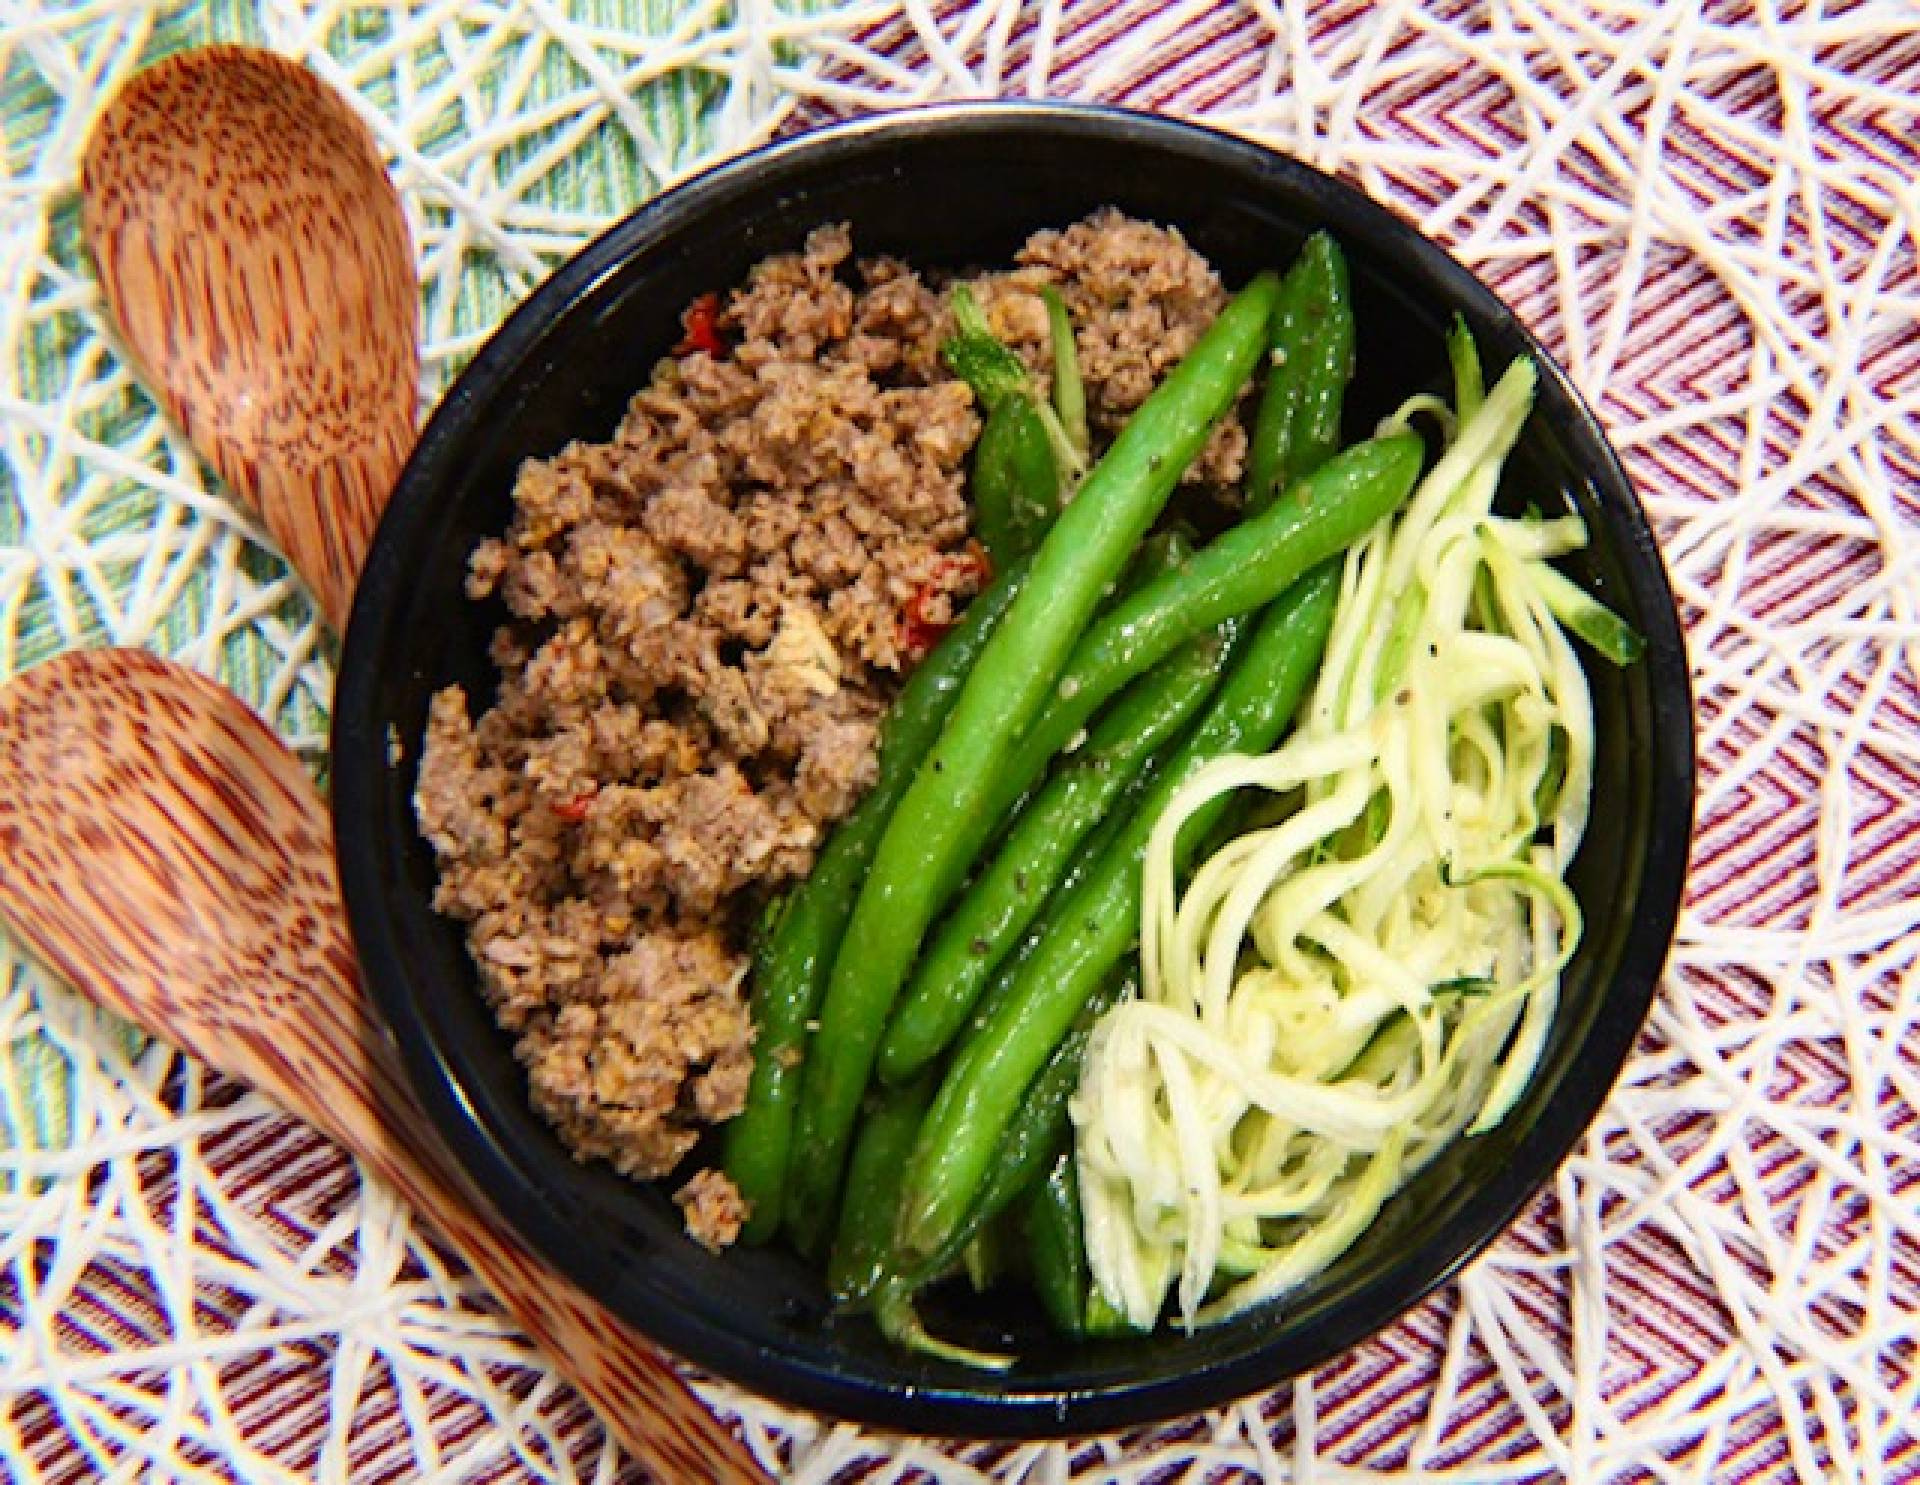 Ground Beef, Zucchini Noodles and Green Beans